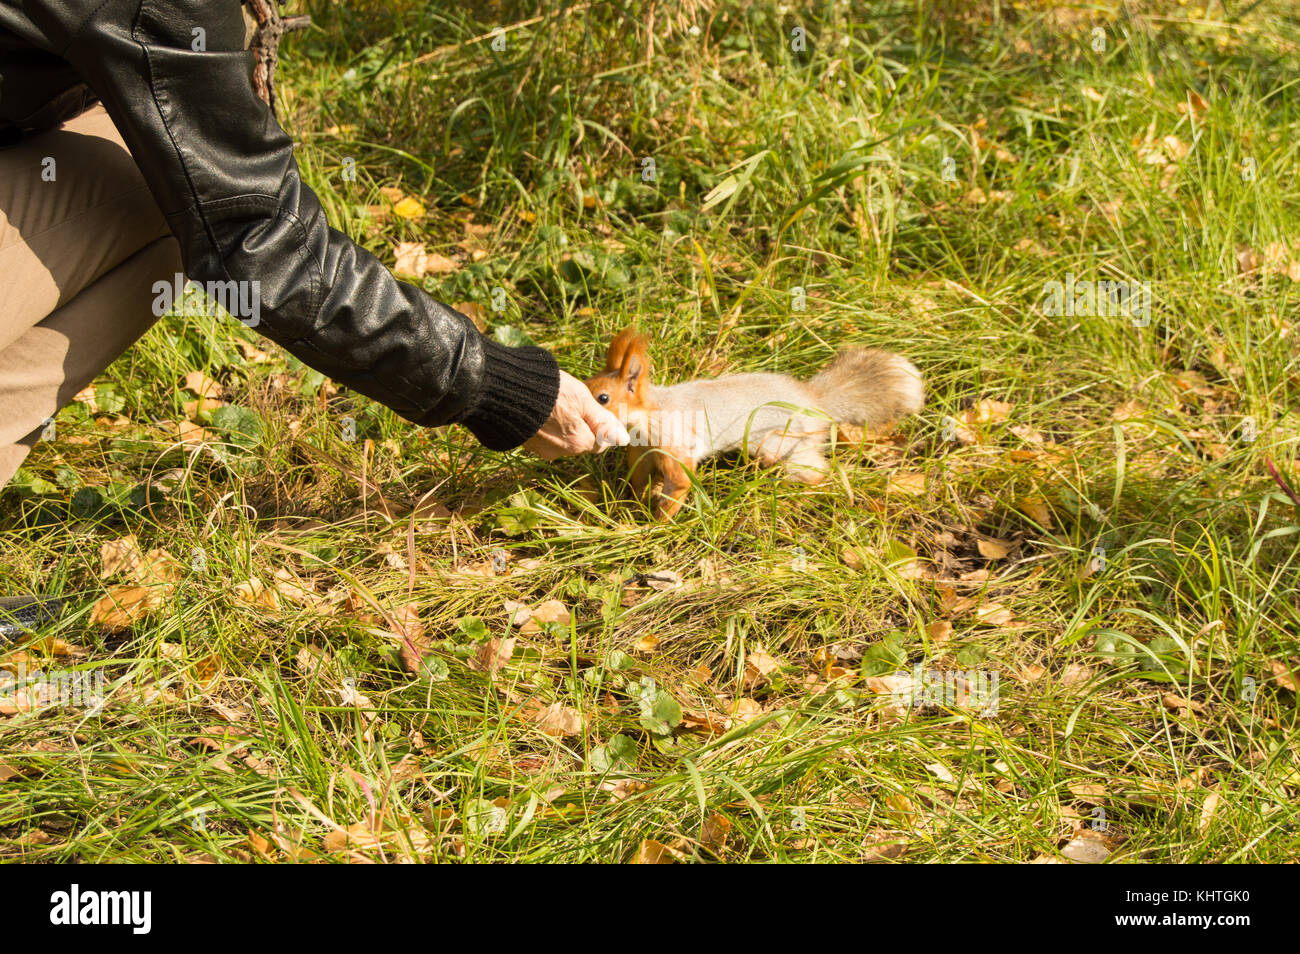 Girl feeds a grey squirrel with a fluffy tail in autumn Park. - Stock Image